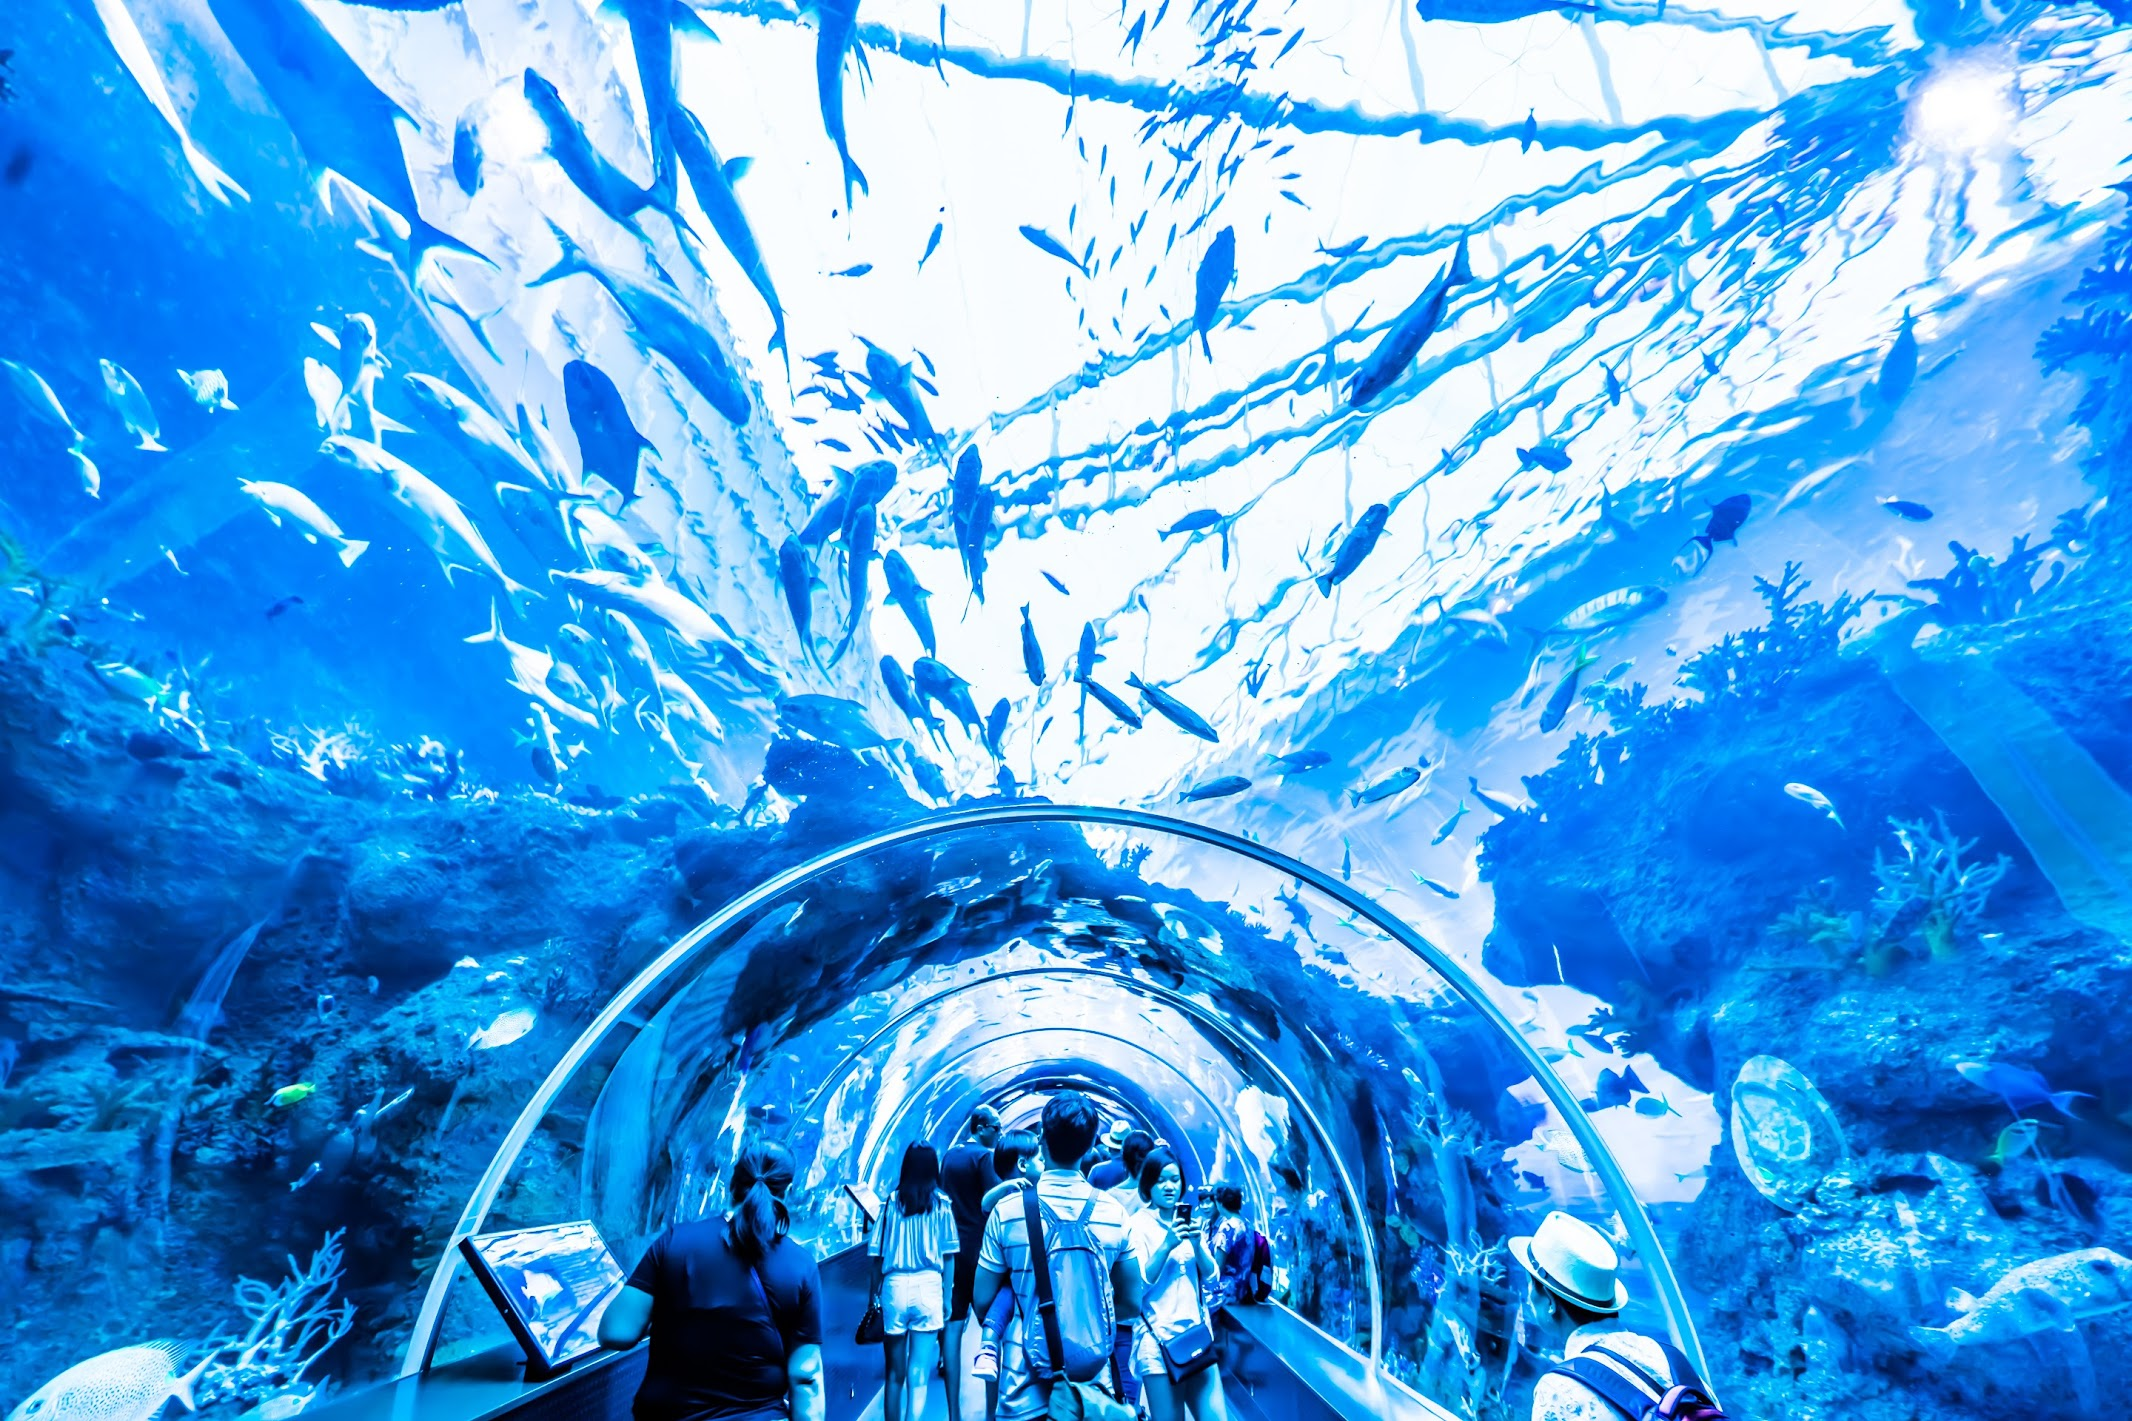 Singapore Sentosa S.E.A. Aquarium Shark3